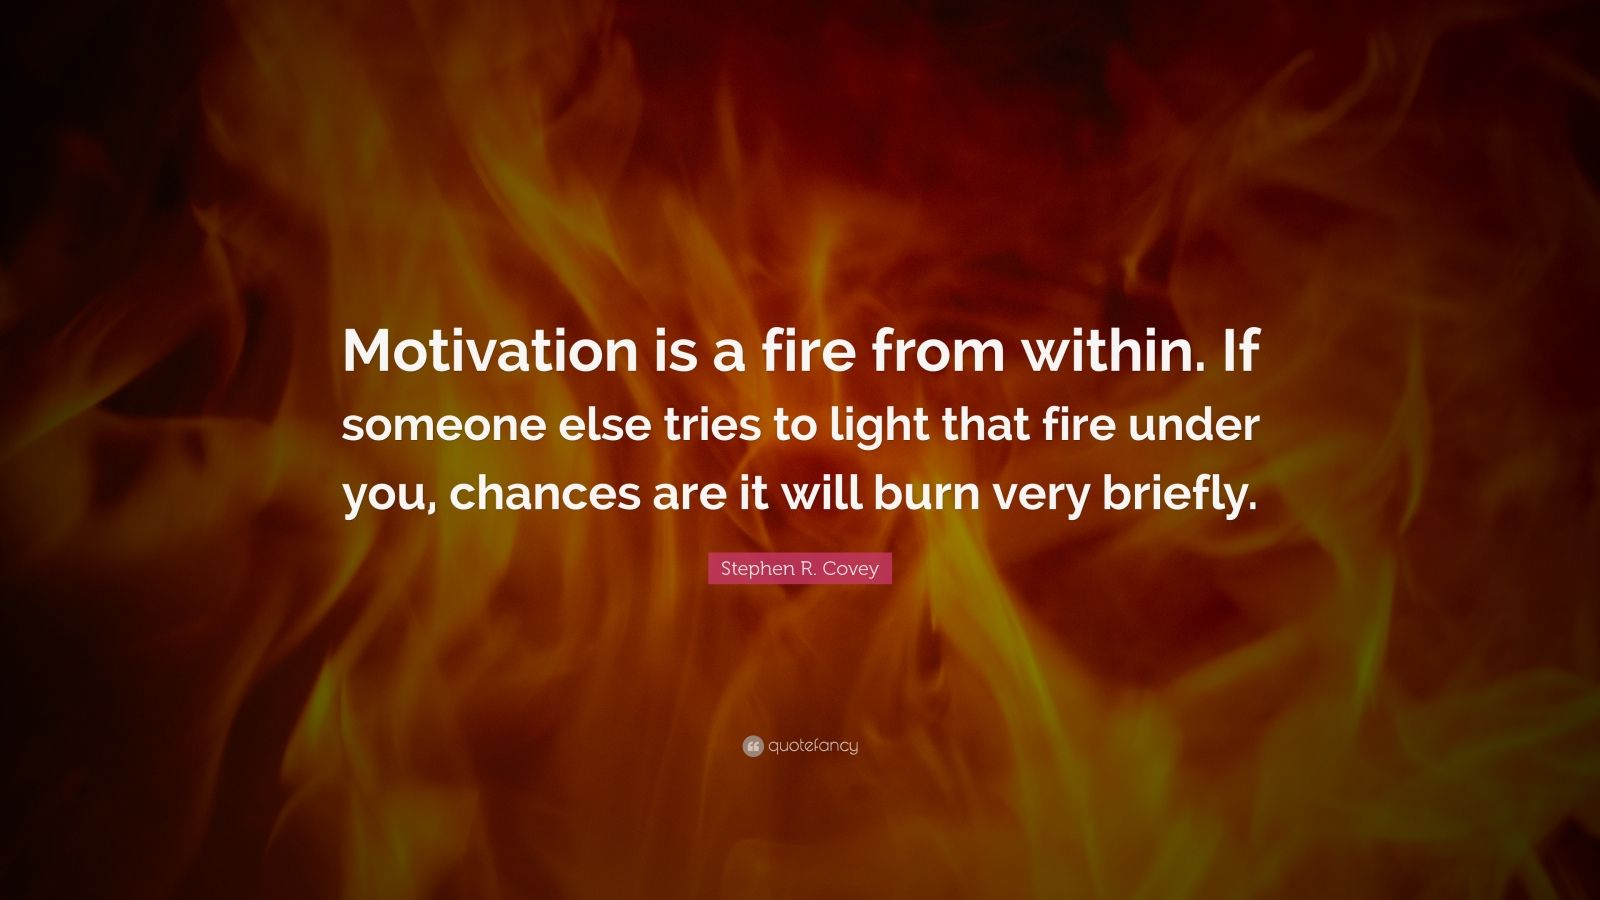 """Stephen R. Covey Quote: """"Motivation is a fire from within. If someone else tries to light that fire under you, chances are it will burn very briefly."""""""